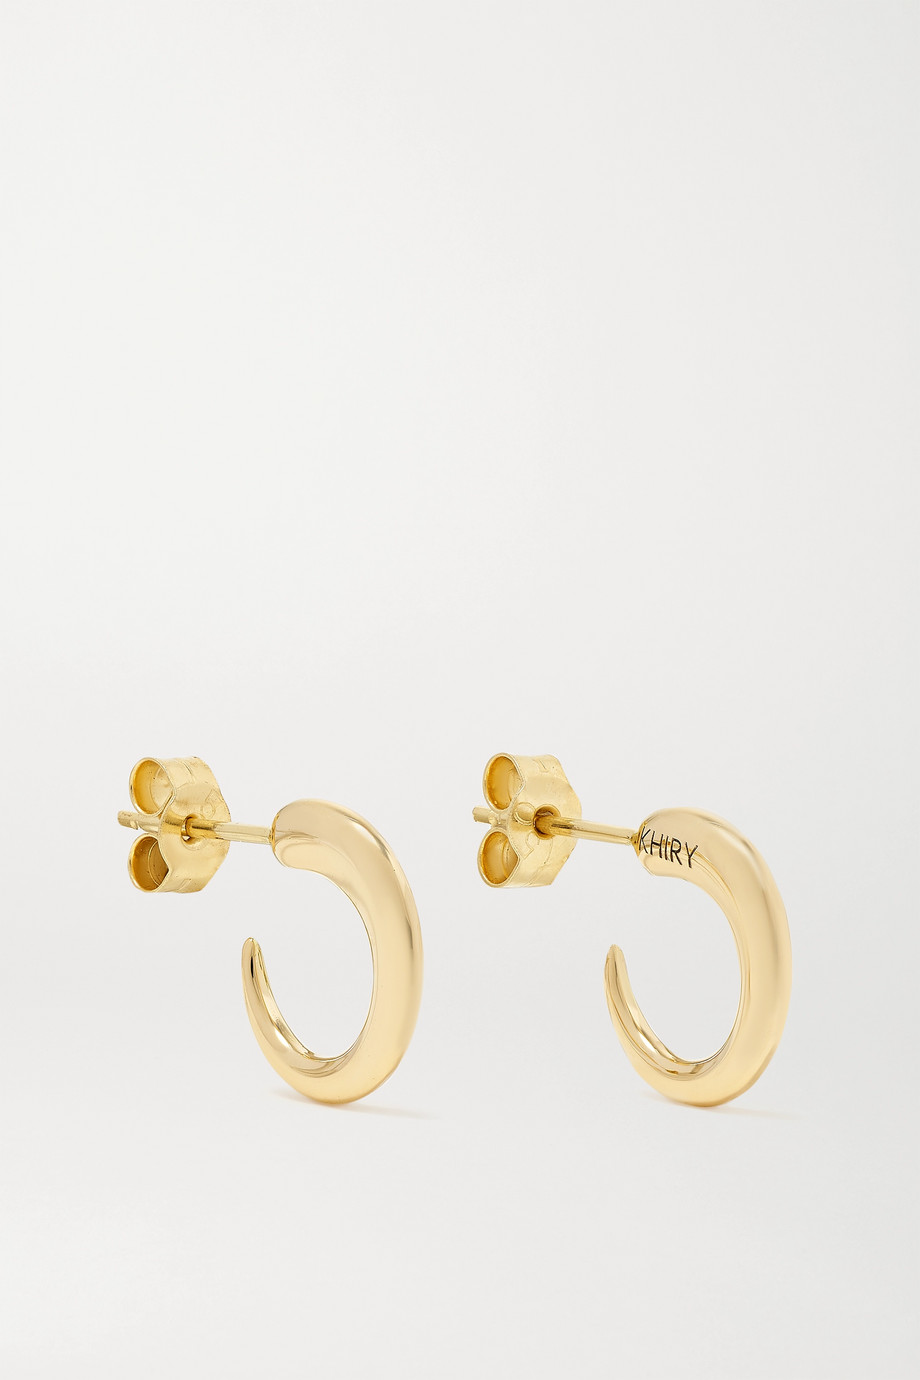 KHIRY FINE Tiny Khartoum 18-karat gold hoop earrings